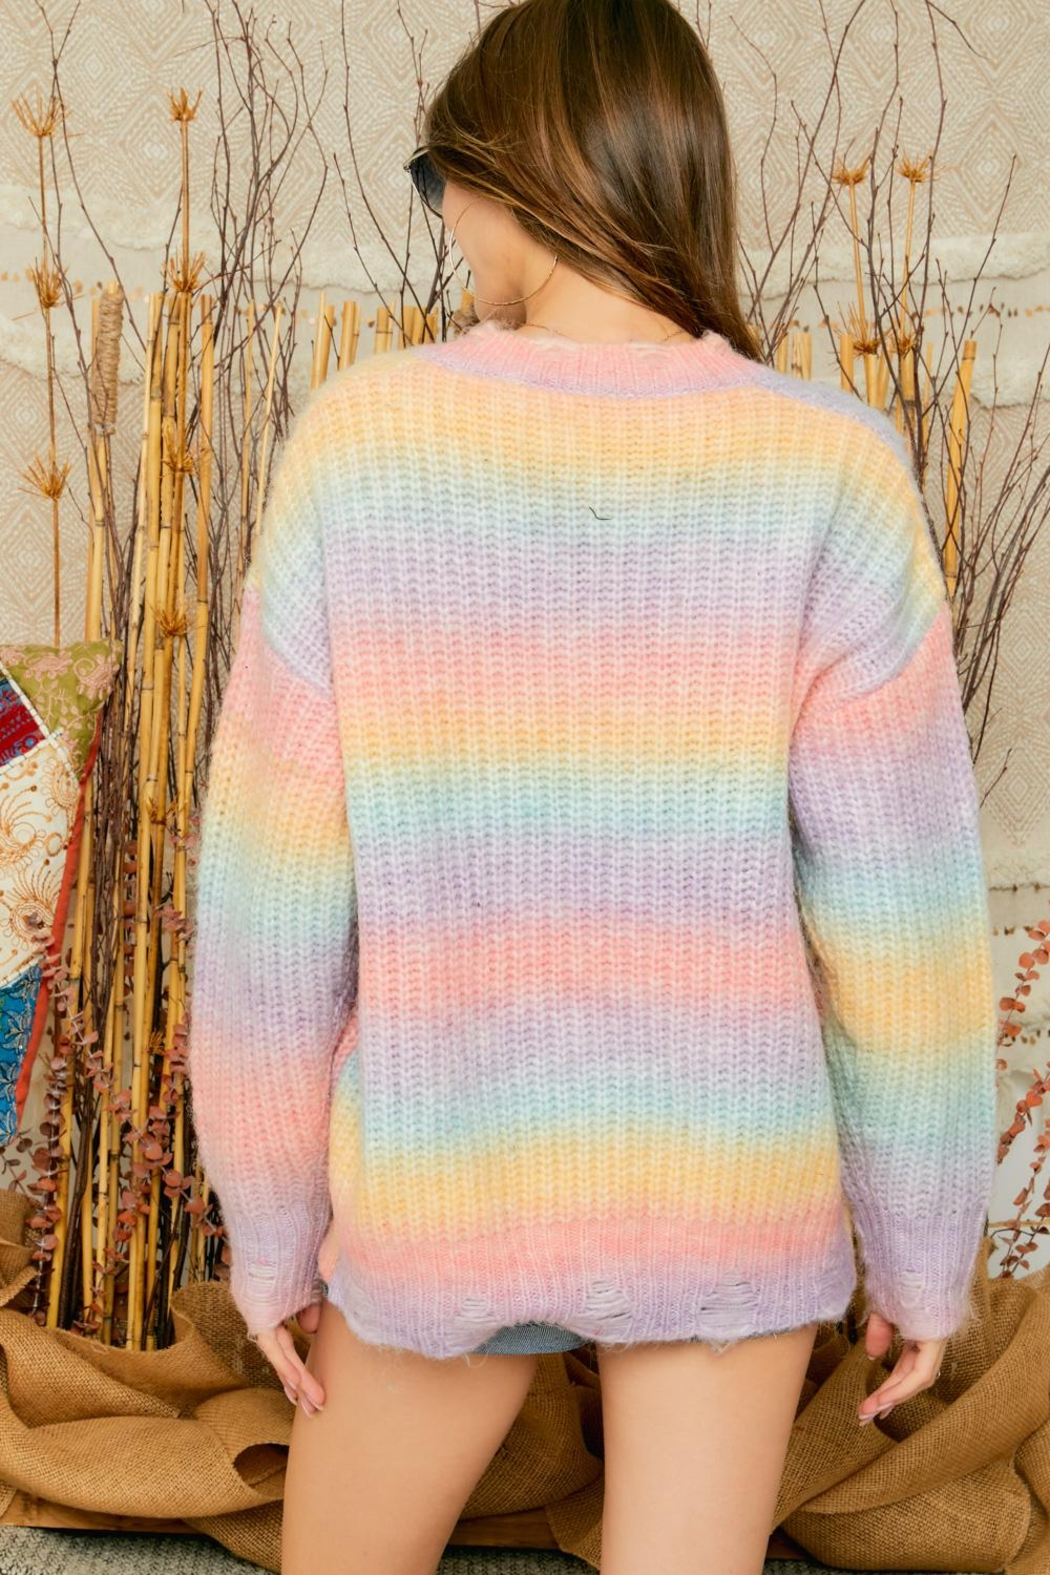 Adora Cotton Candy Ombre Tie Dye V Neck Distressed Knit Sweater Jumper - Back Cropped Image